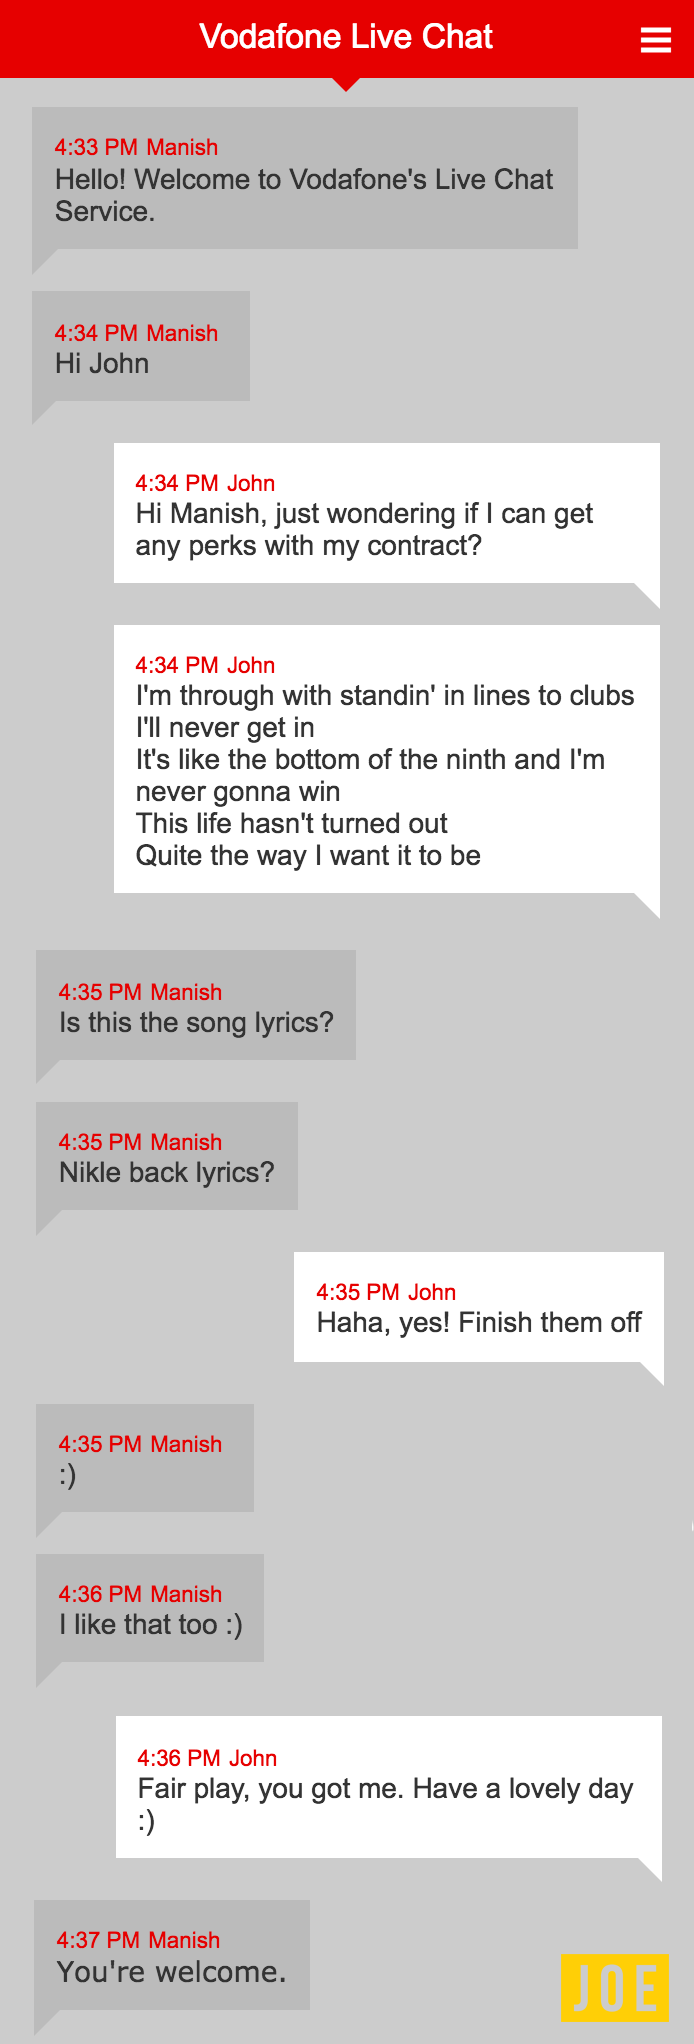 I quoted Nickelback lyrics during online support chats and